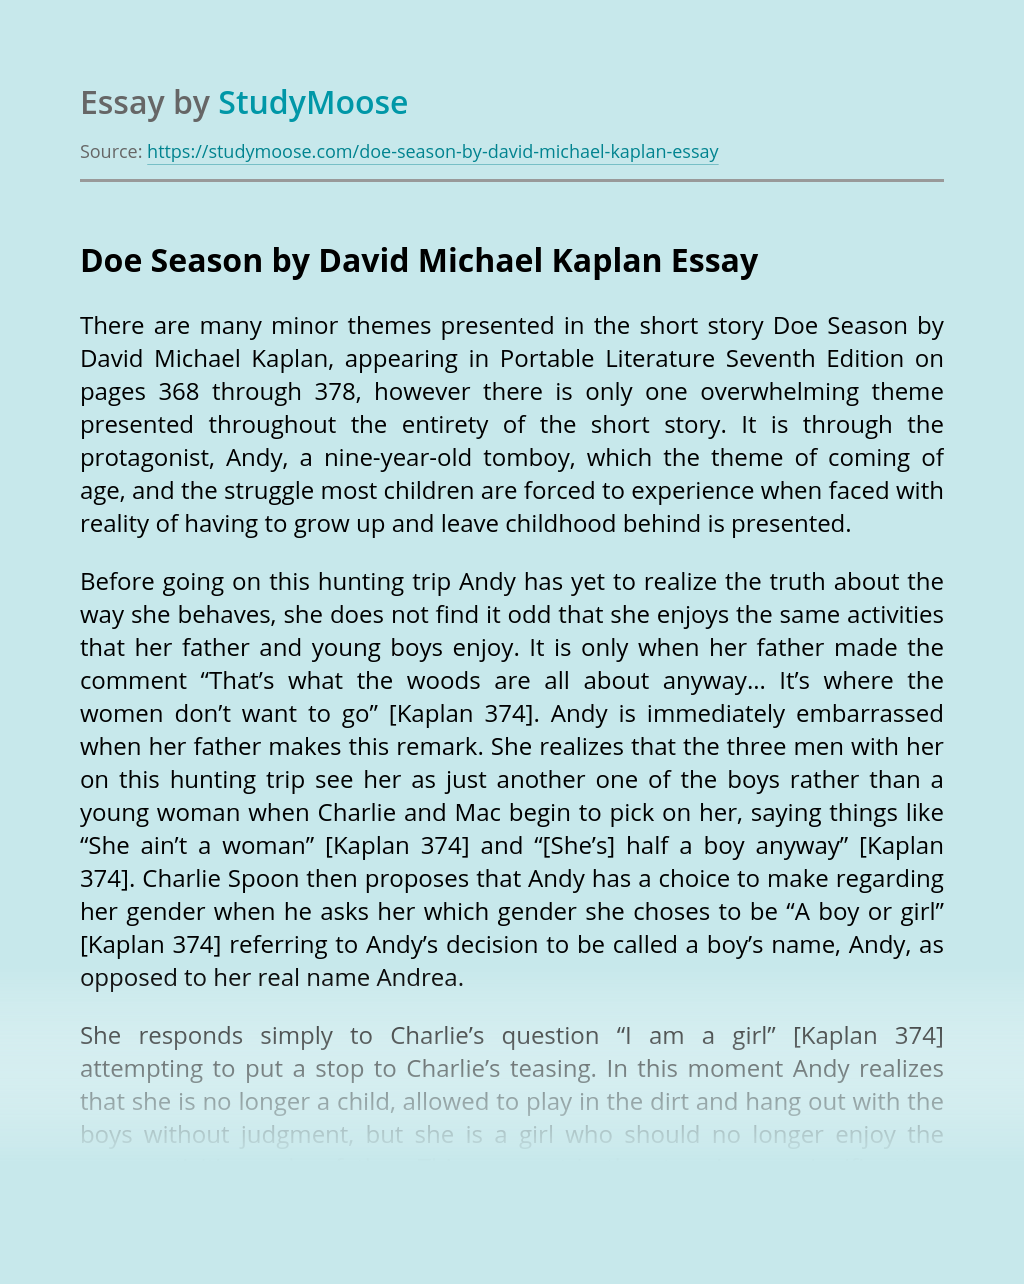 Doe Season by David Michael Kaplan